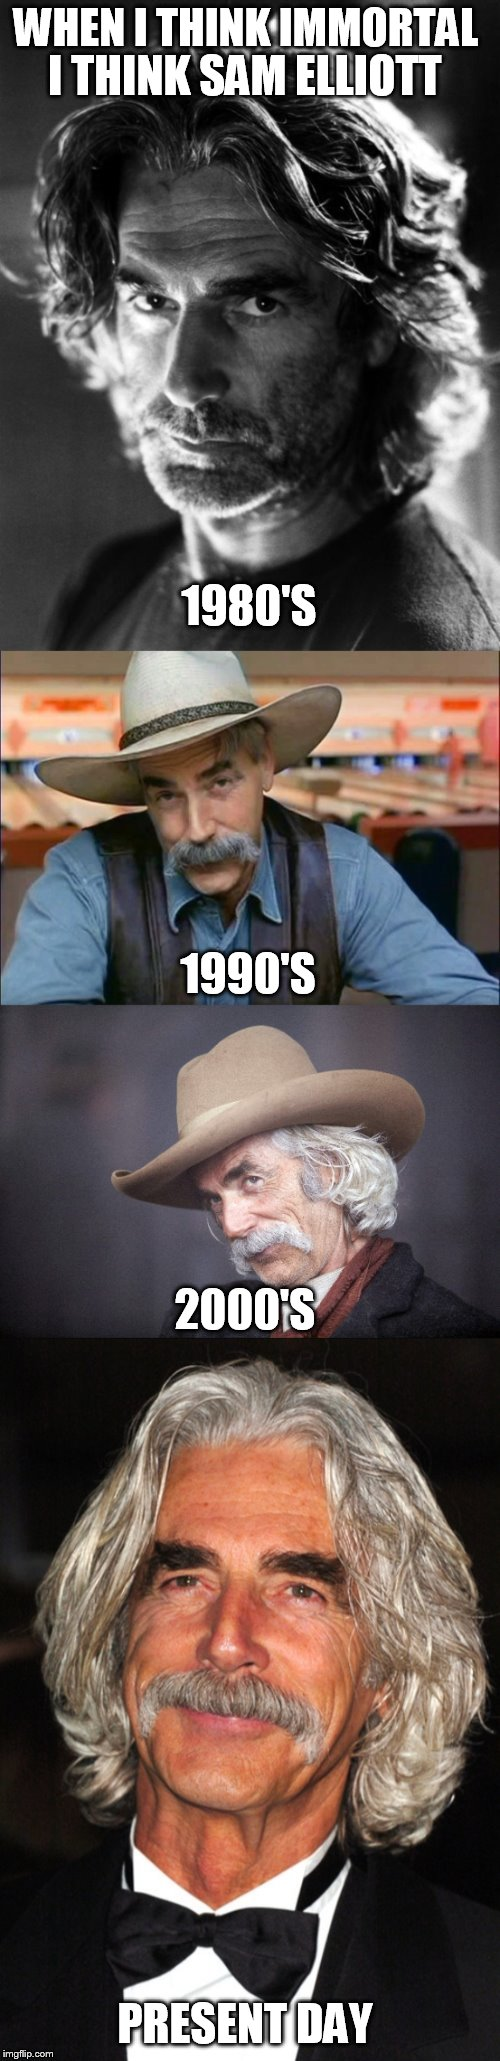 Sam Elliott seems immortal to me! | WHEN I THINK IMMORTAL I THINK SAM ELLIOTT 1980'S 1990'S 2000'S PRESENT DAY | image tagged in meme,sam elliott,immortal,actor,never changing,just awesome | made w/ Imgflip meme maker